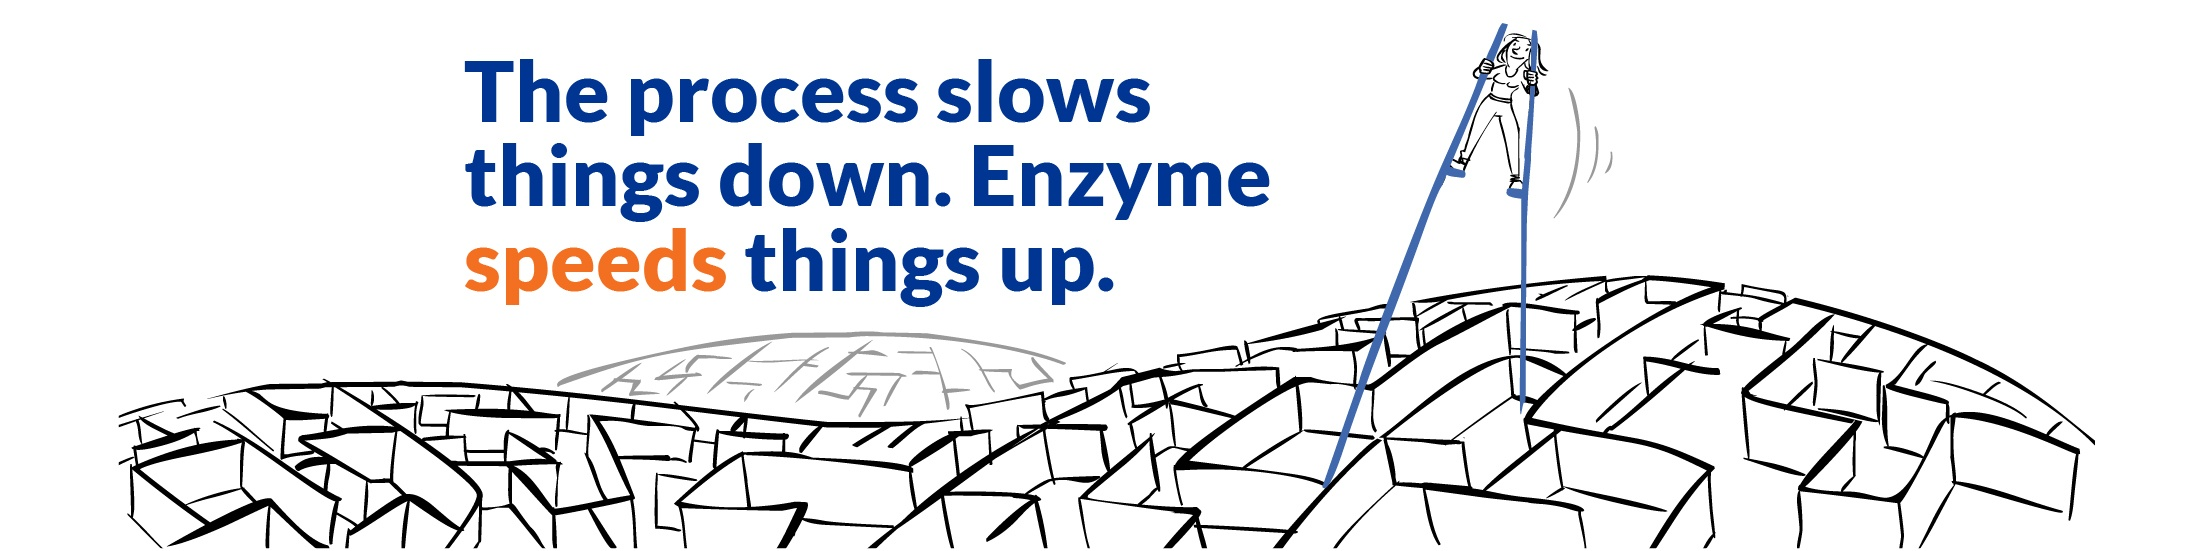 The process slows things down. Enzyme speeds things up.